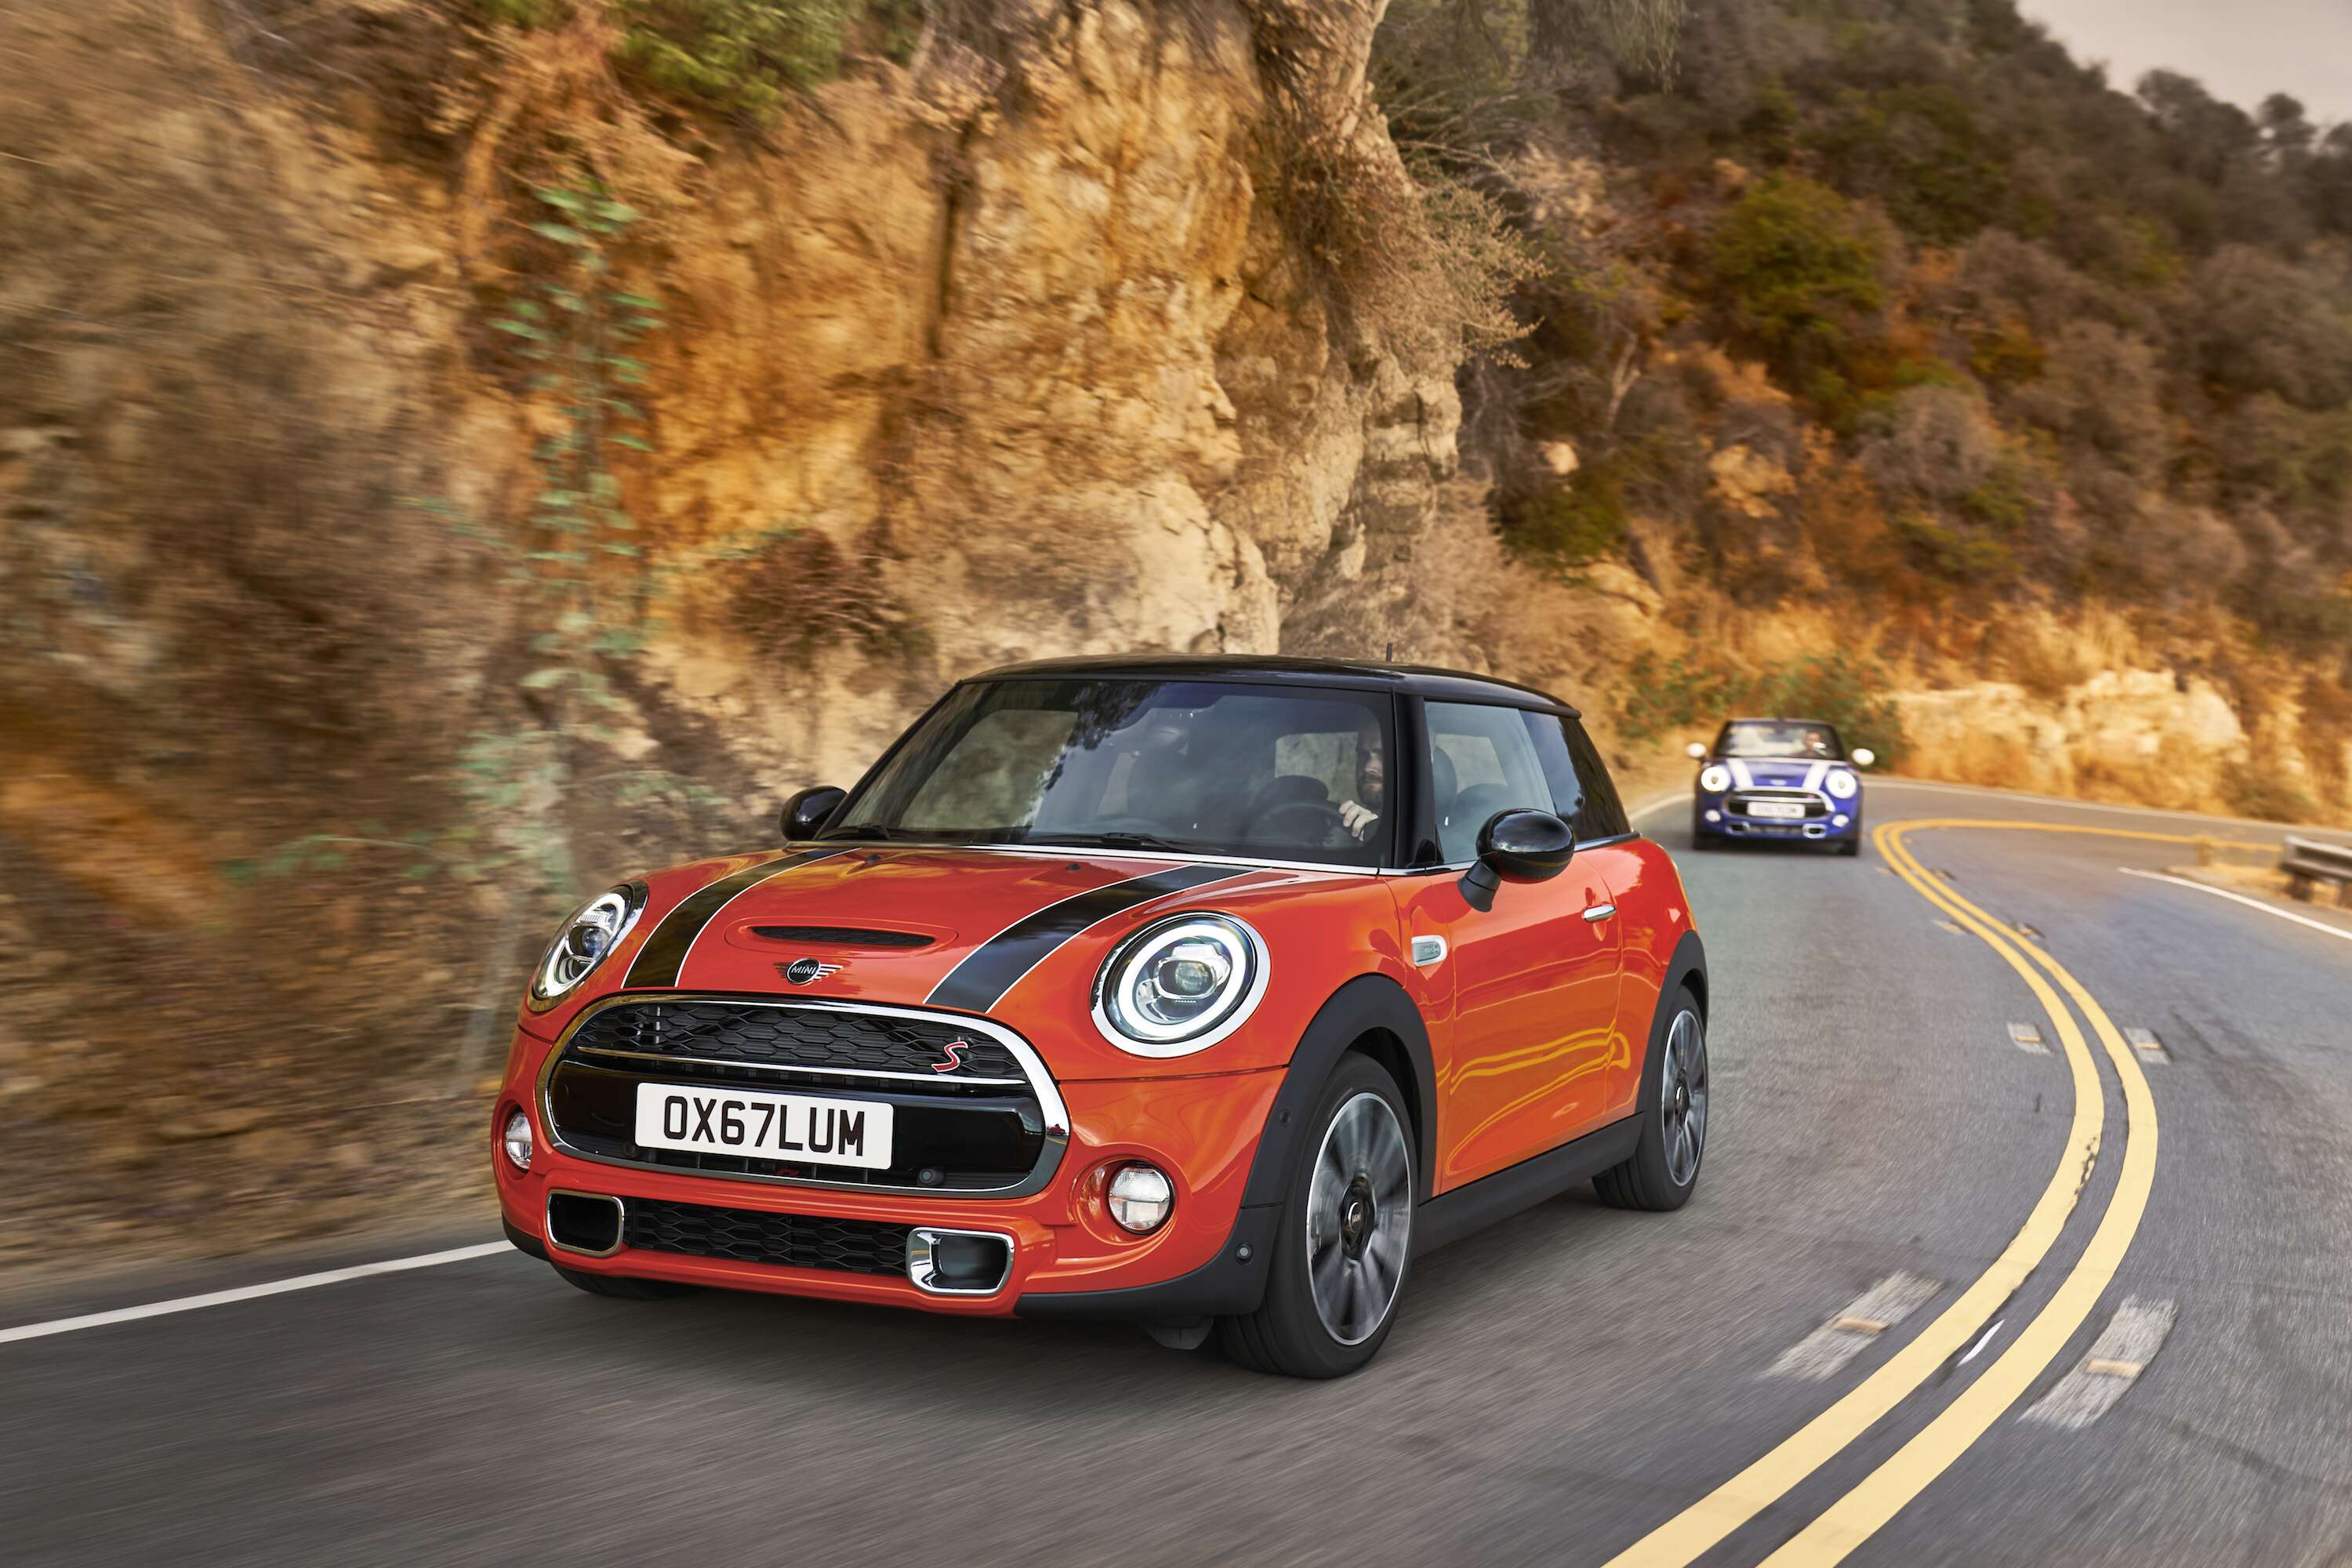 news a cooper drive h first mini review better door bmw crossover countryman